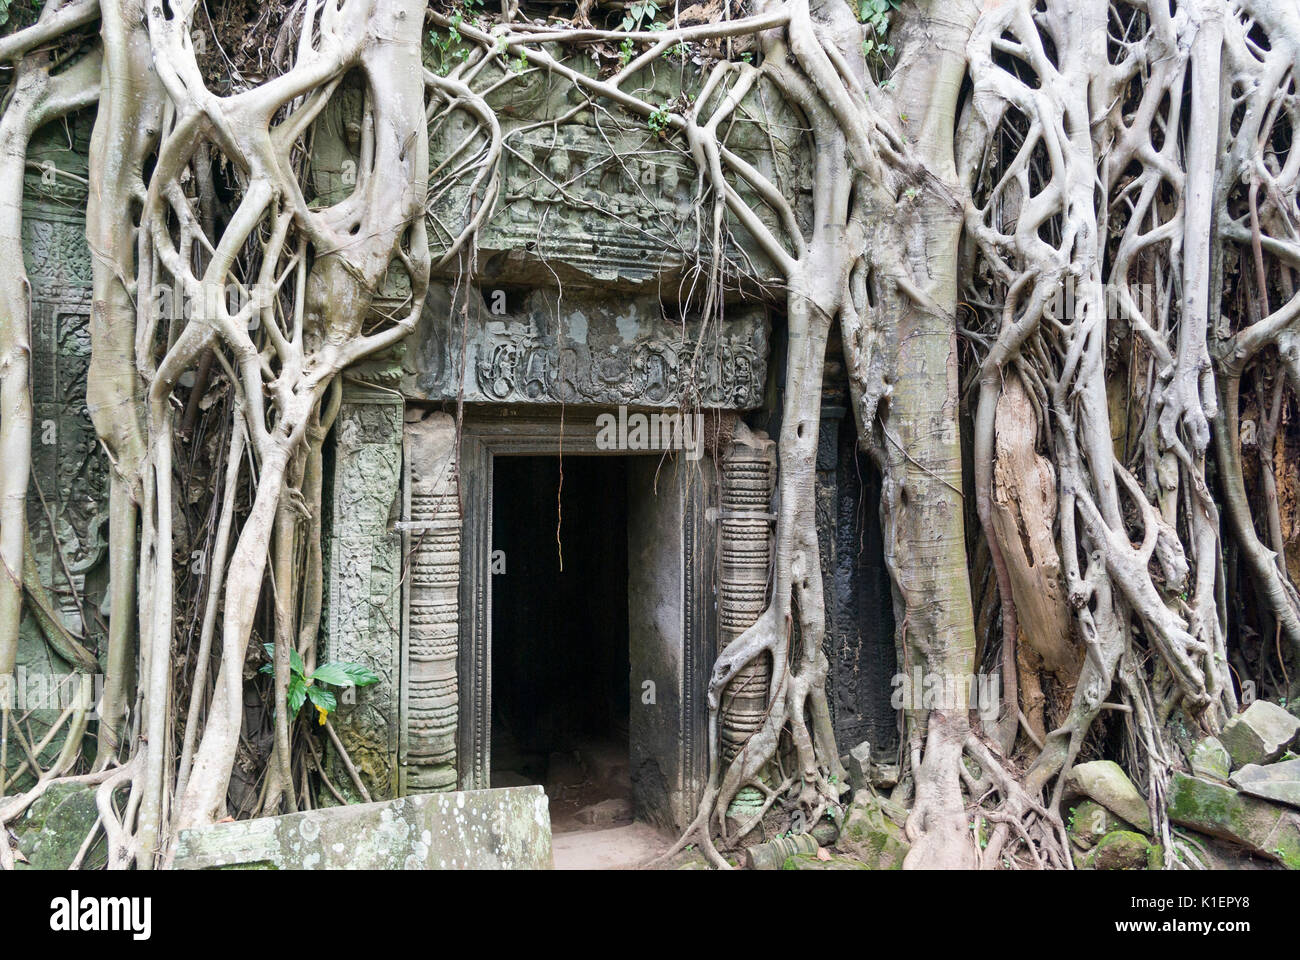 Angkor Wat Ta Prohm Temple door with fig tree roots, Cambodia, Southeast Asia - Stock Image